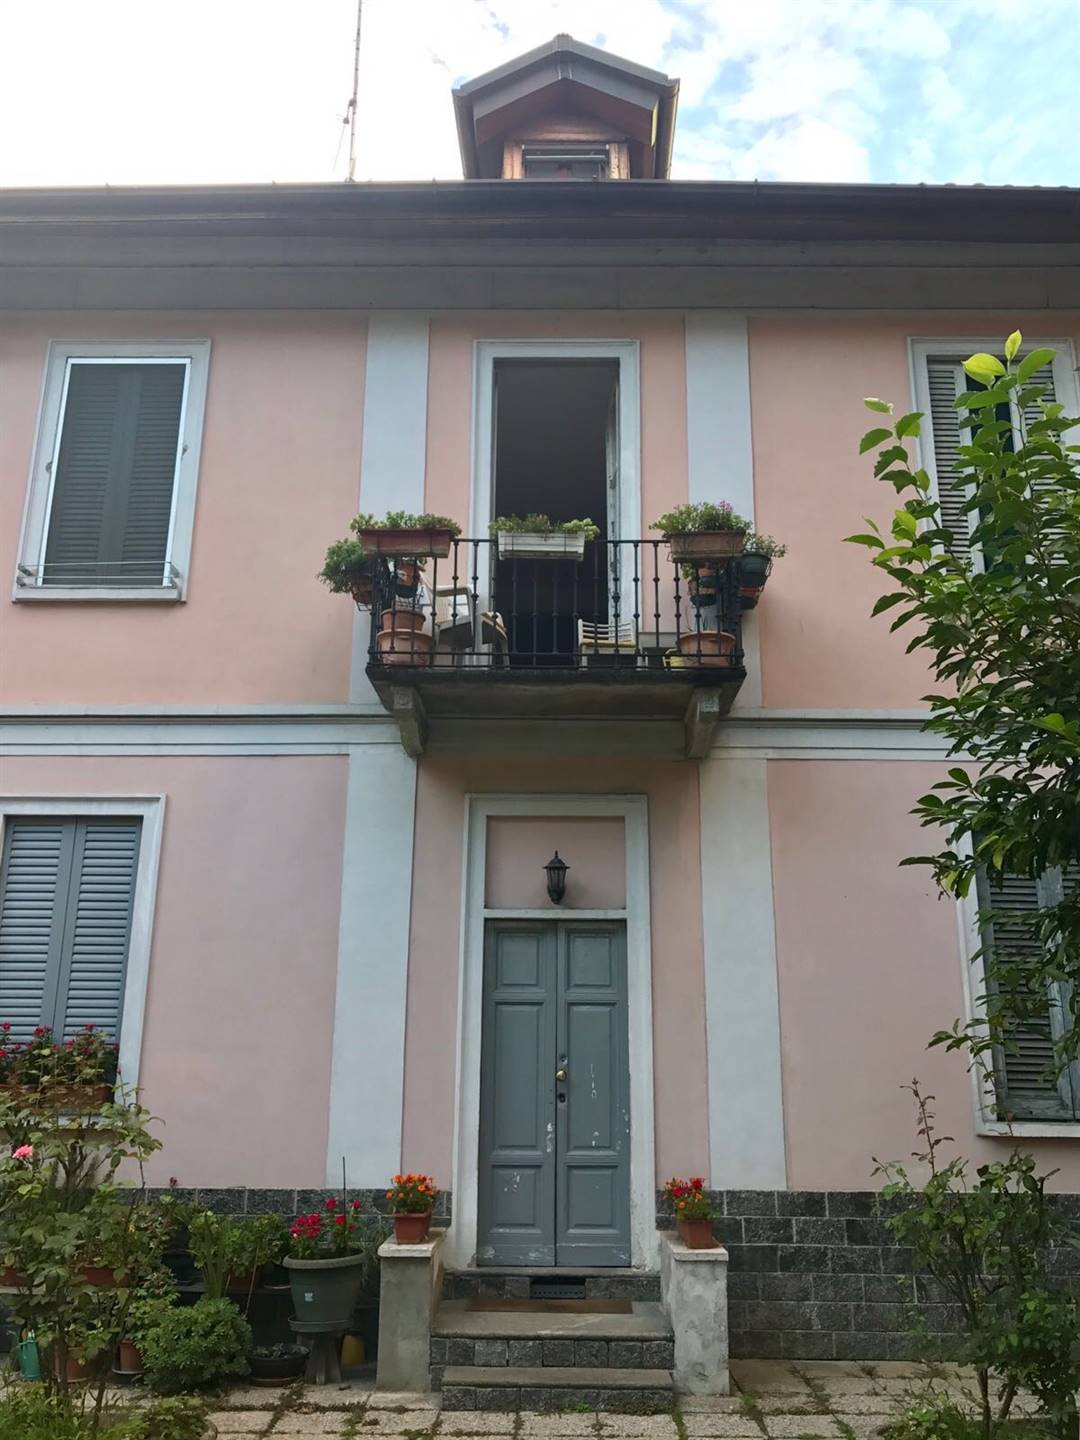 SESTO SAN GIOVANNI, Apartment for rent of 35 Sq. mt., Habitable, Heating Individual heating system, Energetic class: G, Epi: 231,58 kwh/m2 year,